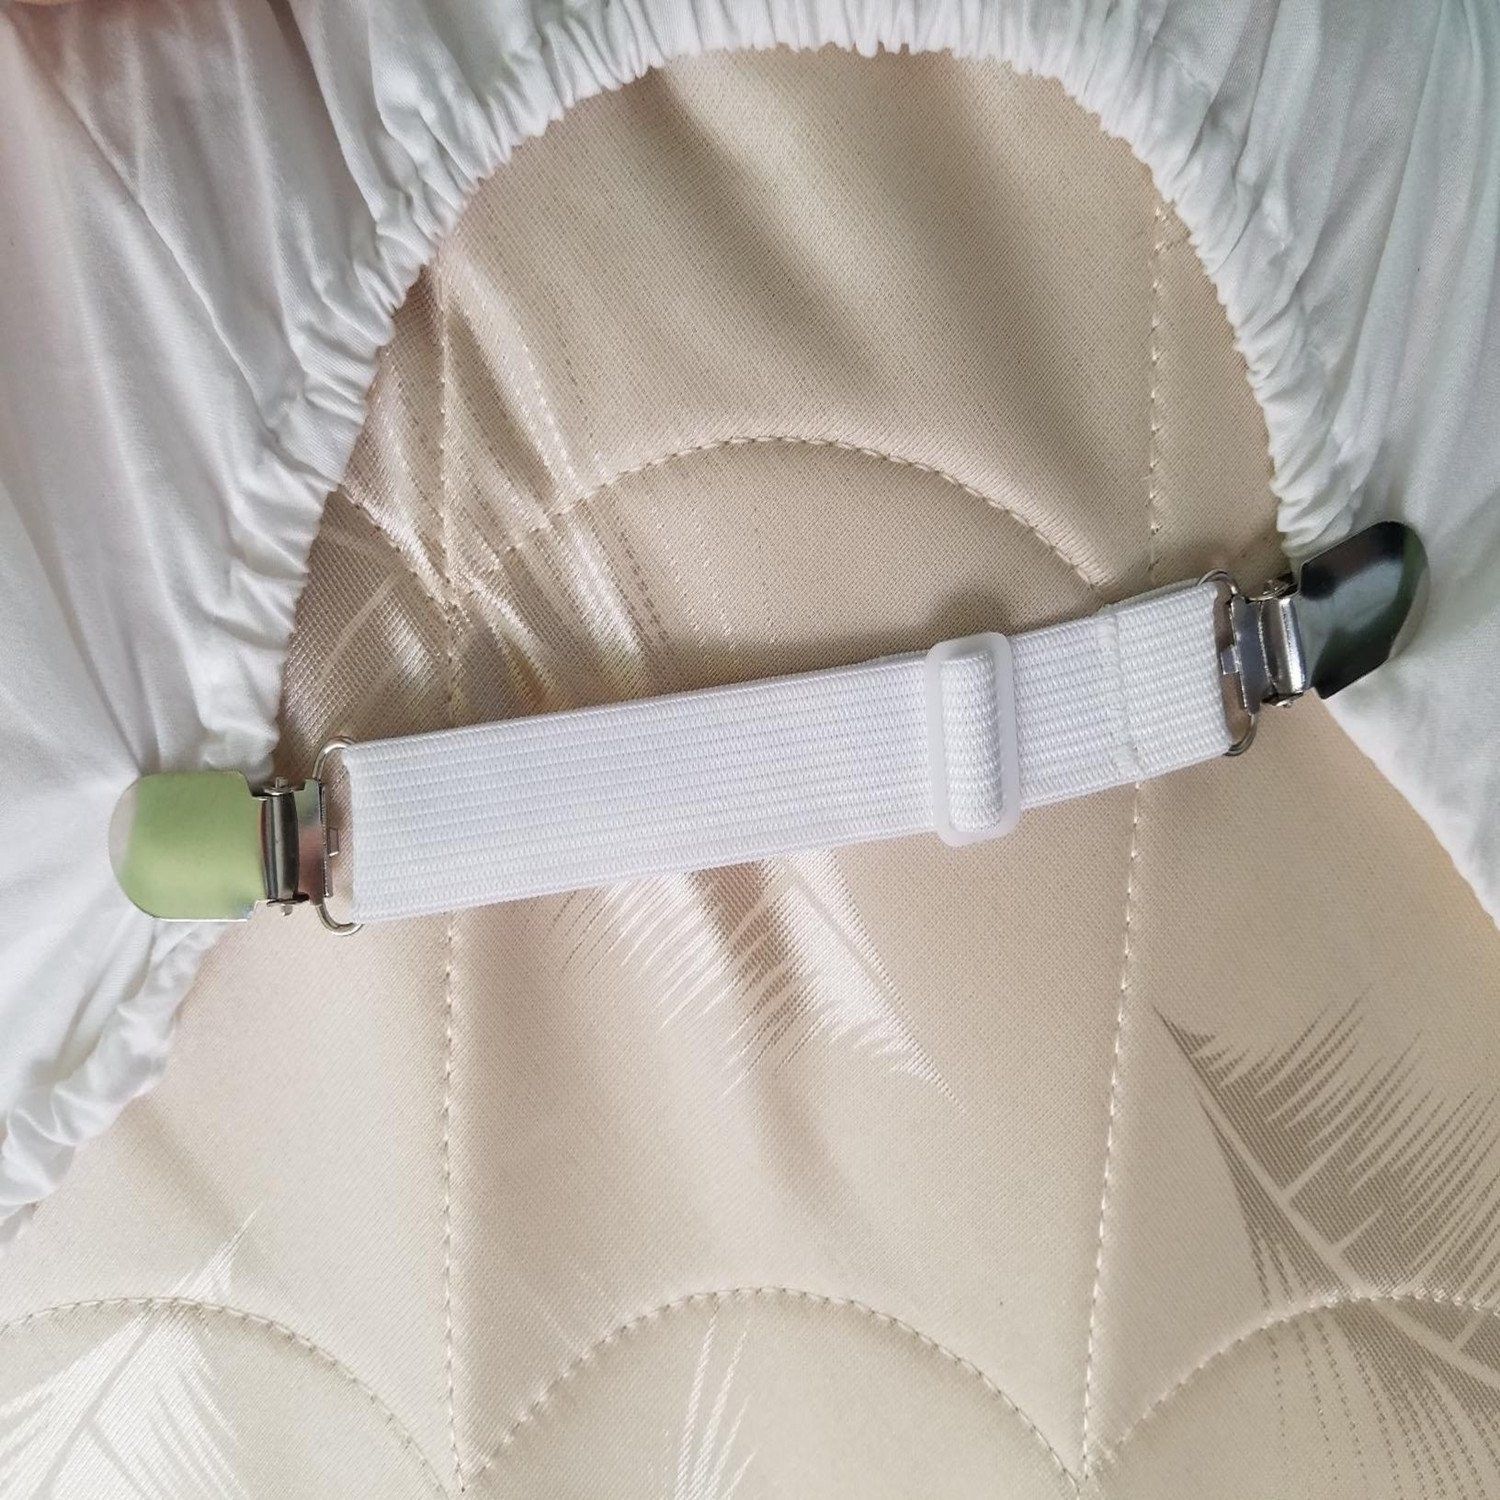 The elastic fastener features two metal clips on each side to grip the fitted sheet